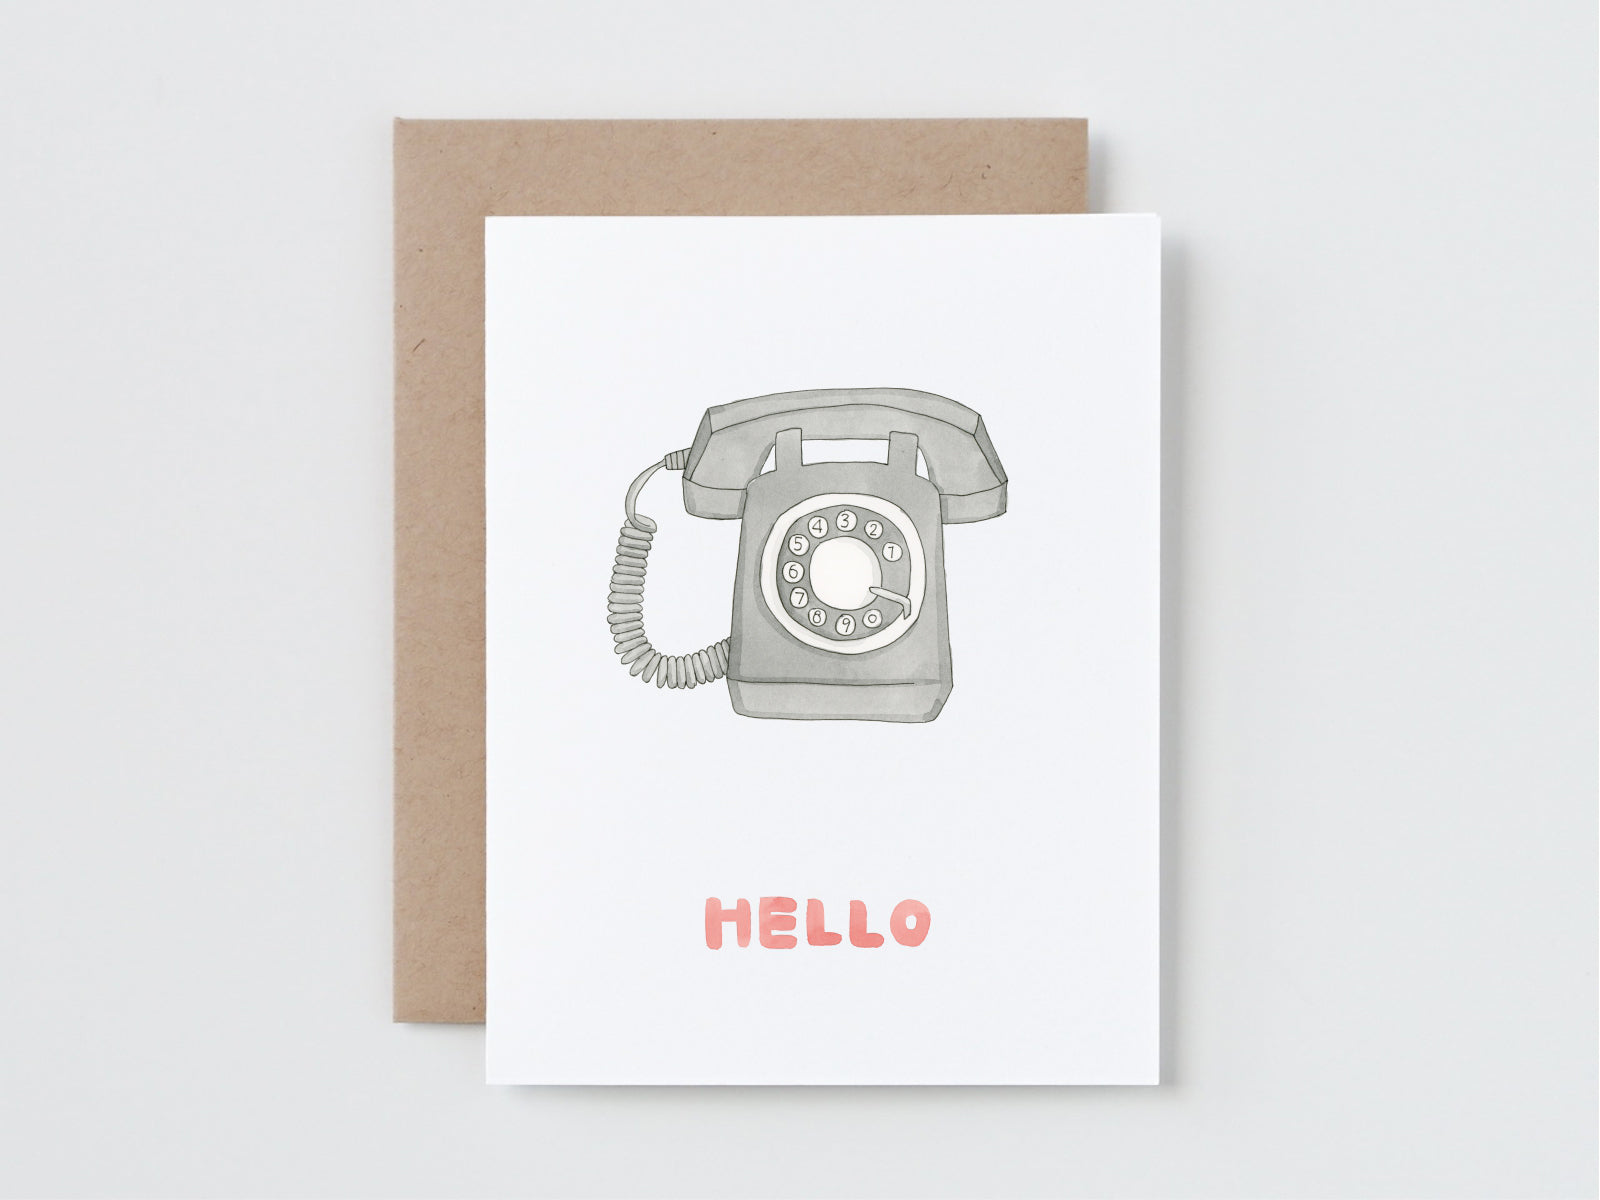 Retro Rotary Telephone Hello Card